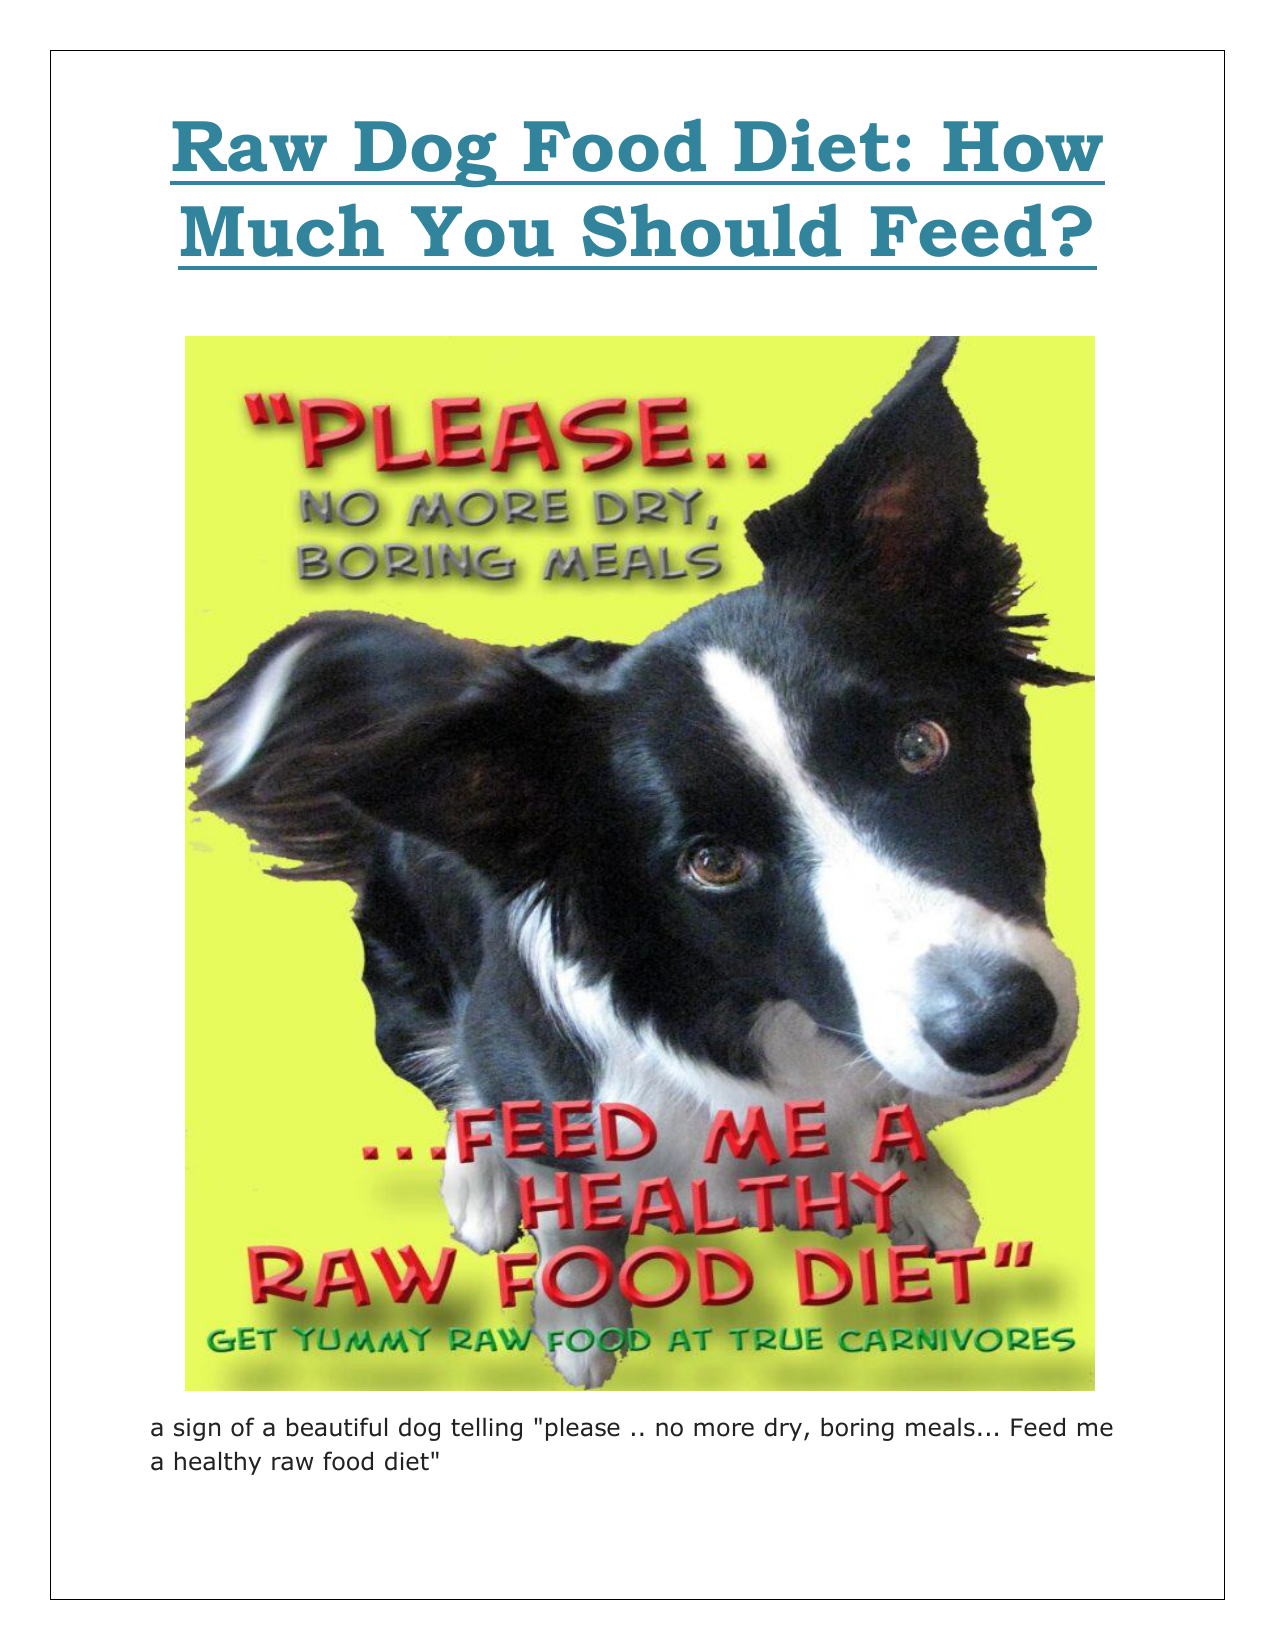 Raw Dog Food Diet How Much You Should Feed.docx